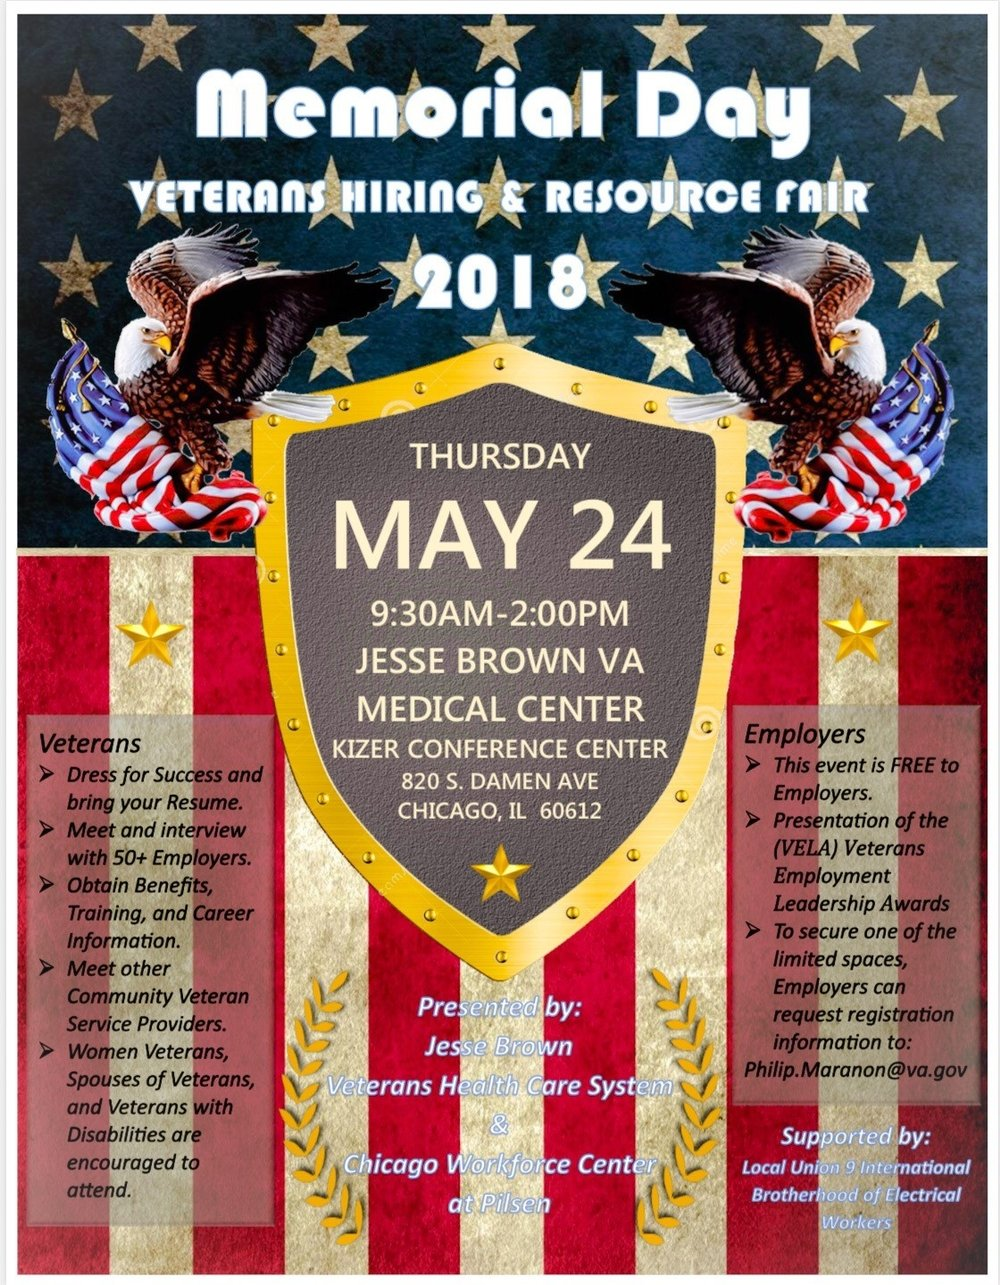 Memorial Day Veterans Hiring Fair May 24th 2018 JPEG.jpg